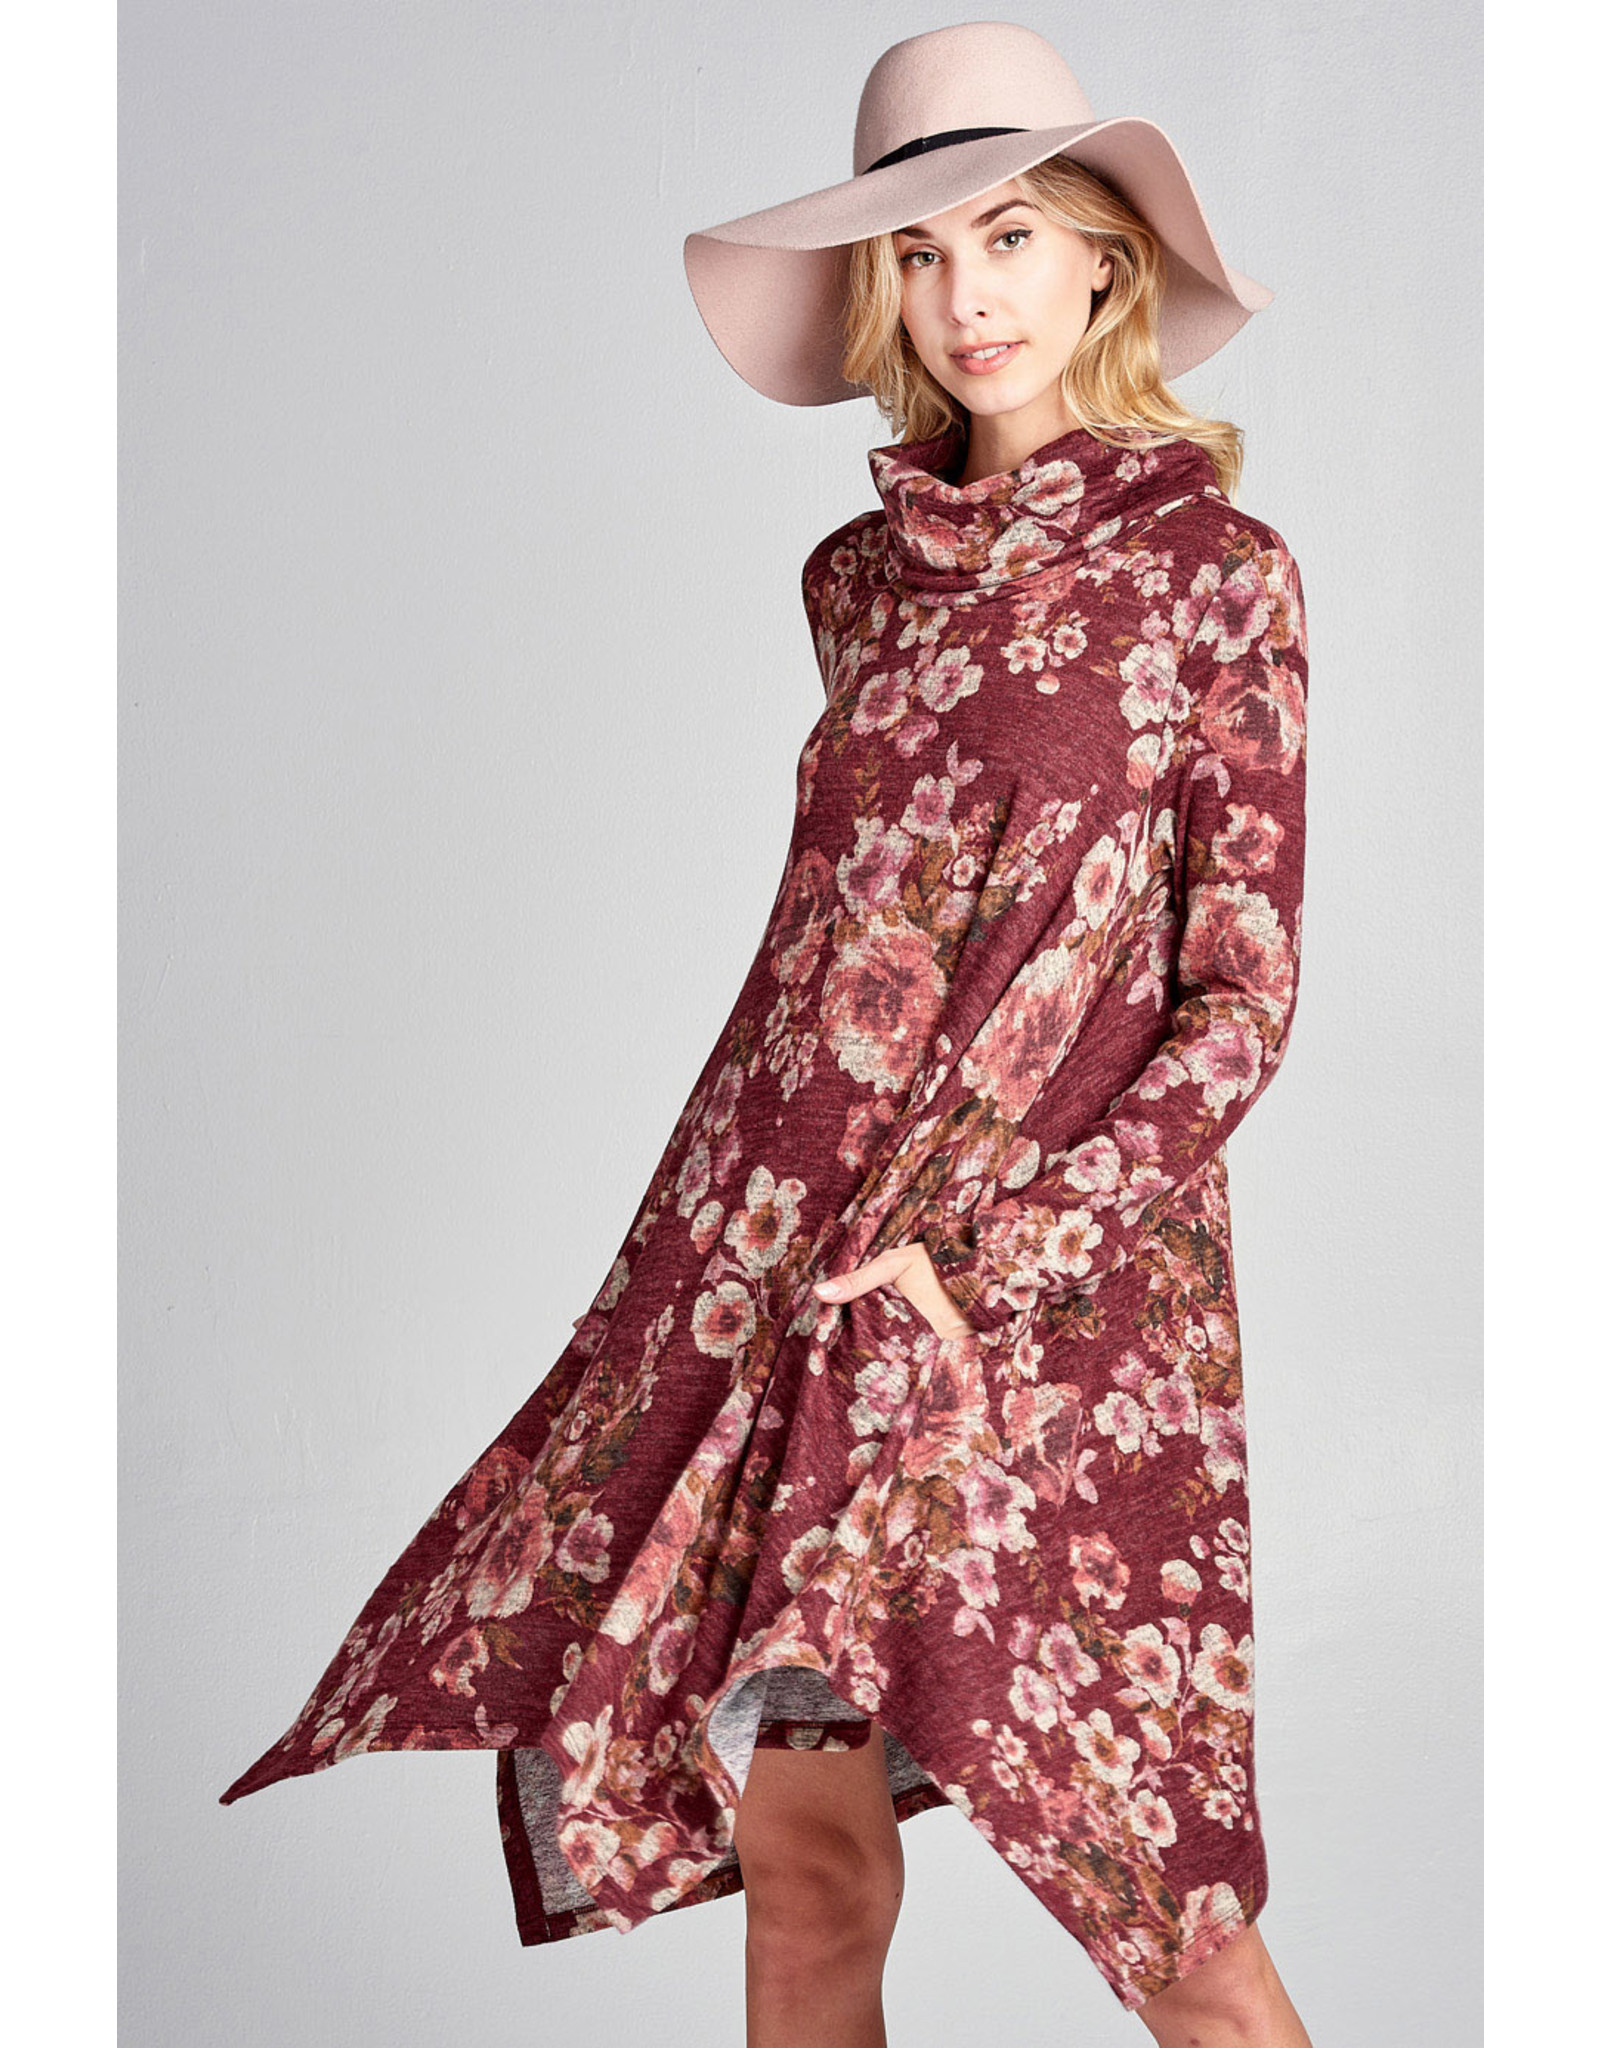 BURGUNDY FLORAL LONG SLEEVE DRESS WITH COWL NECK